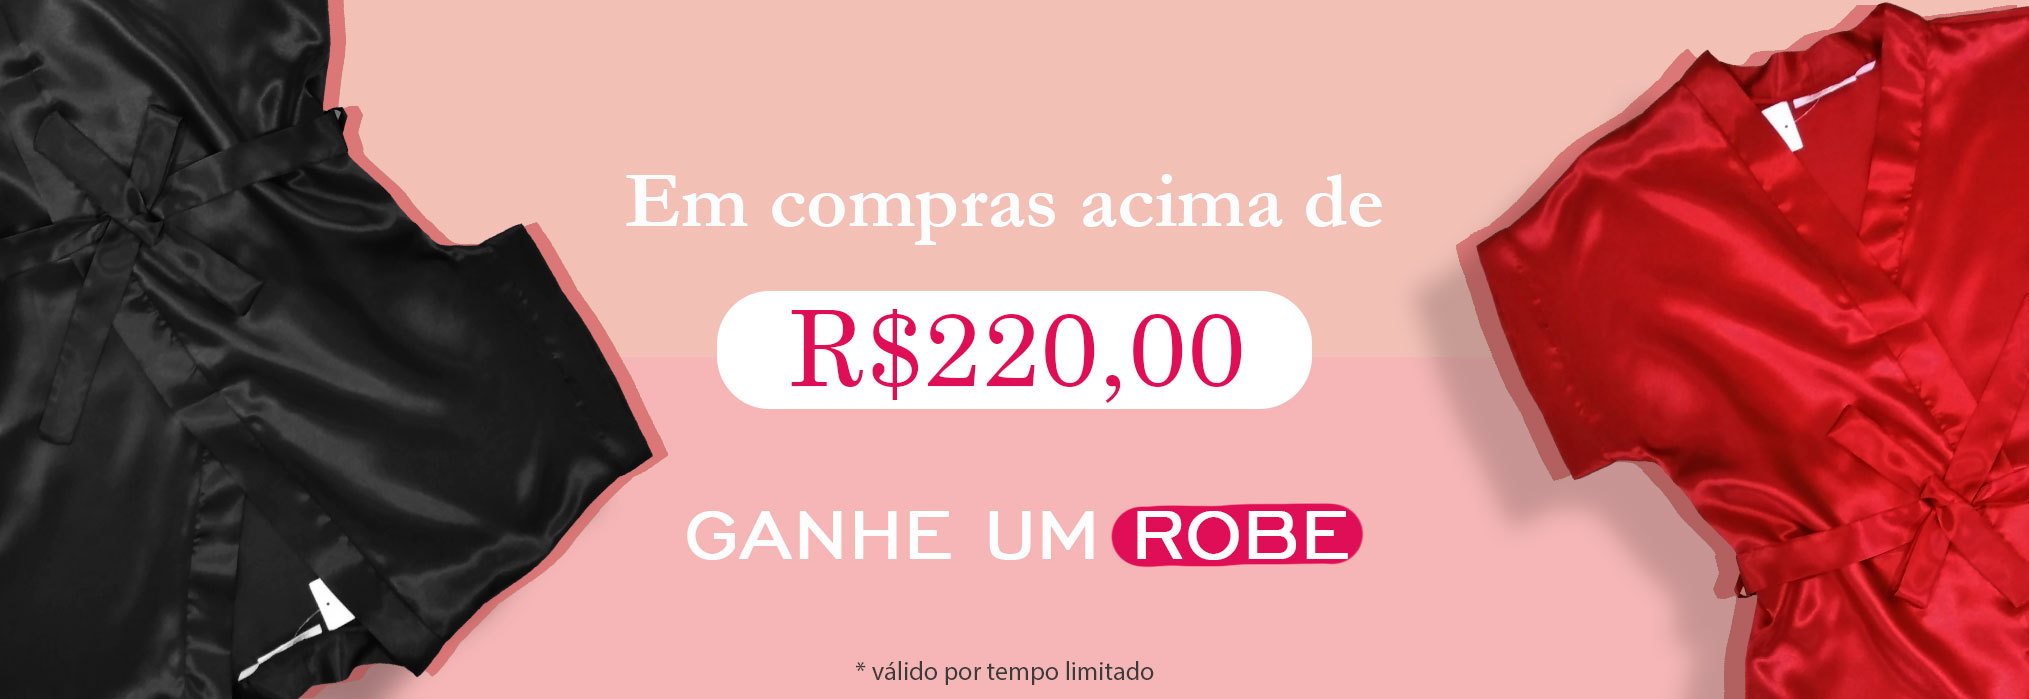 Banners_Robe